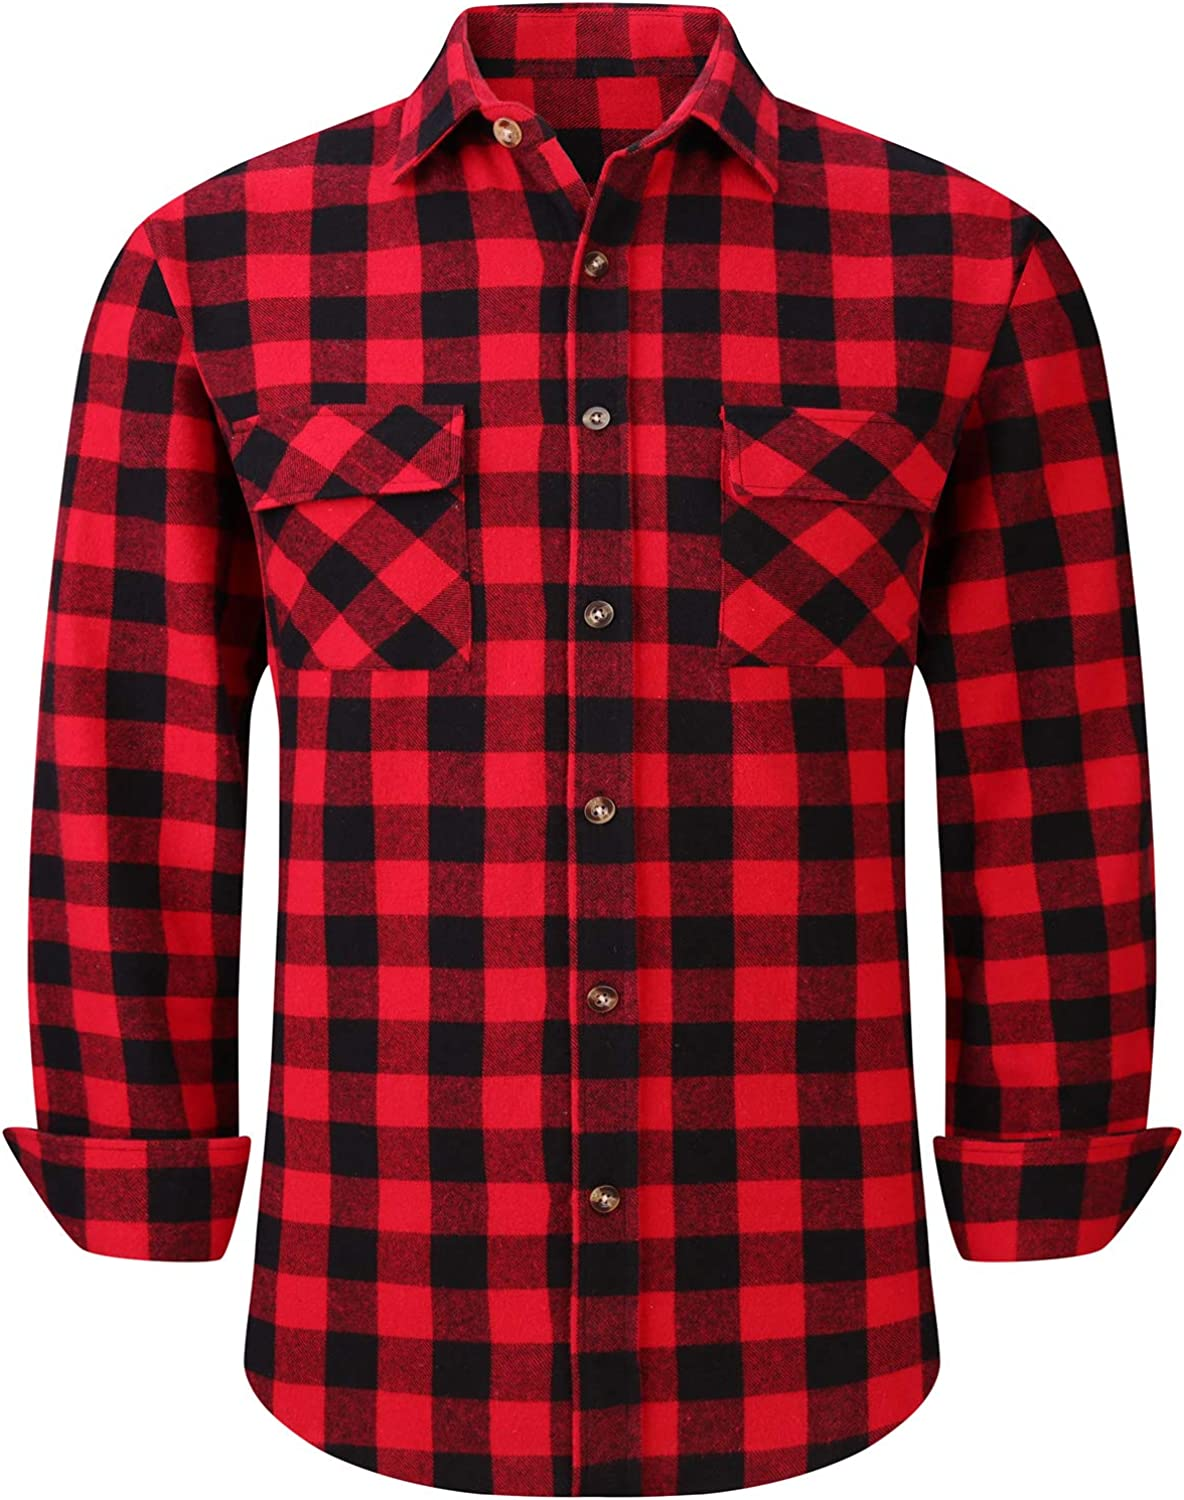 Men's Plaid Flannel Shirts Long Sleeve Regular Fit Button Down Casual Shirts